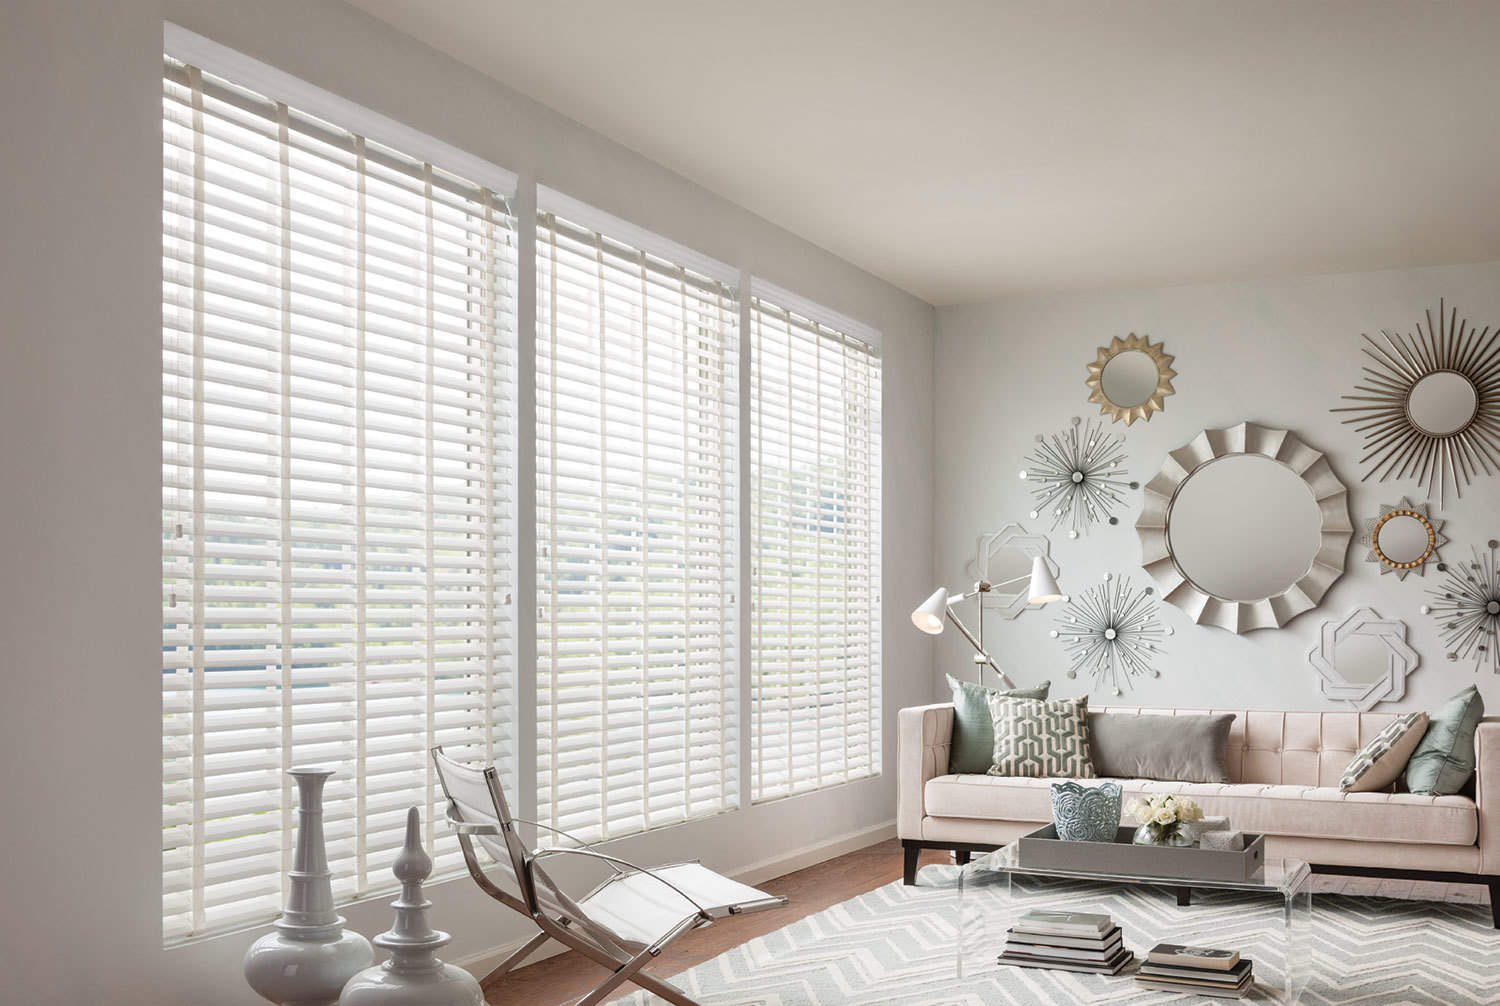 2 Inch Faux Blinds With Tapes Jacksonville Blinds Jacksonville